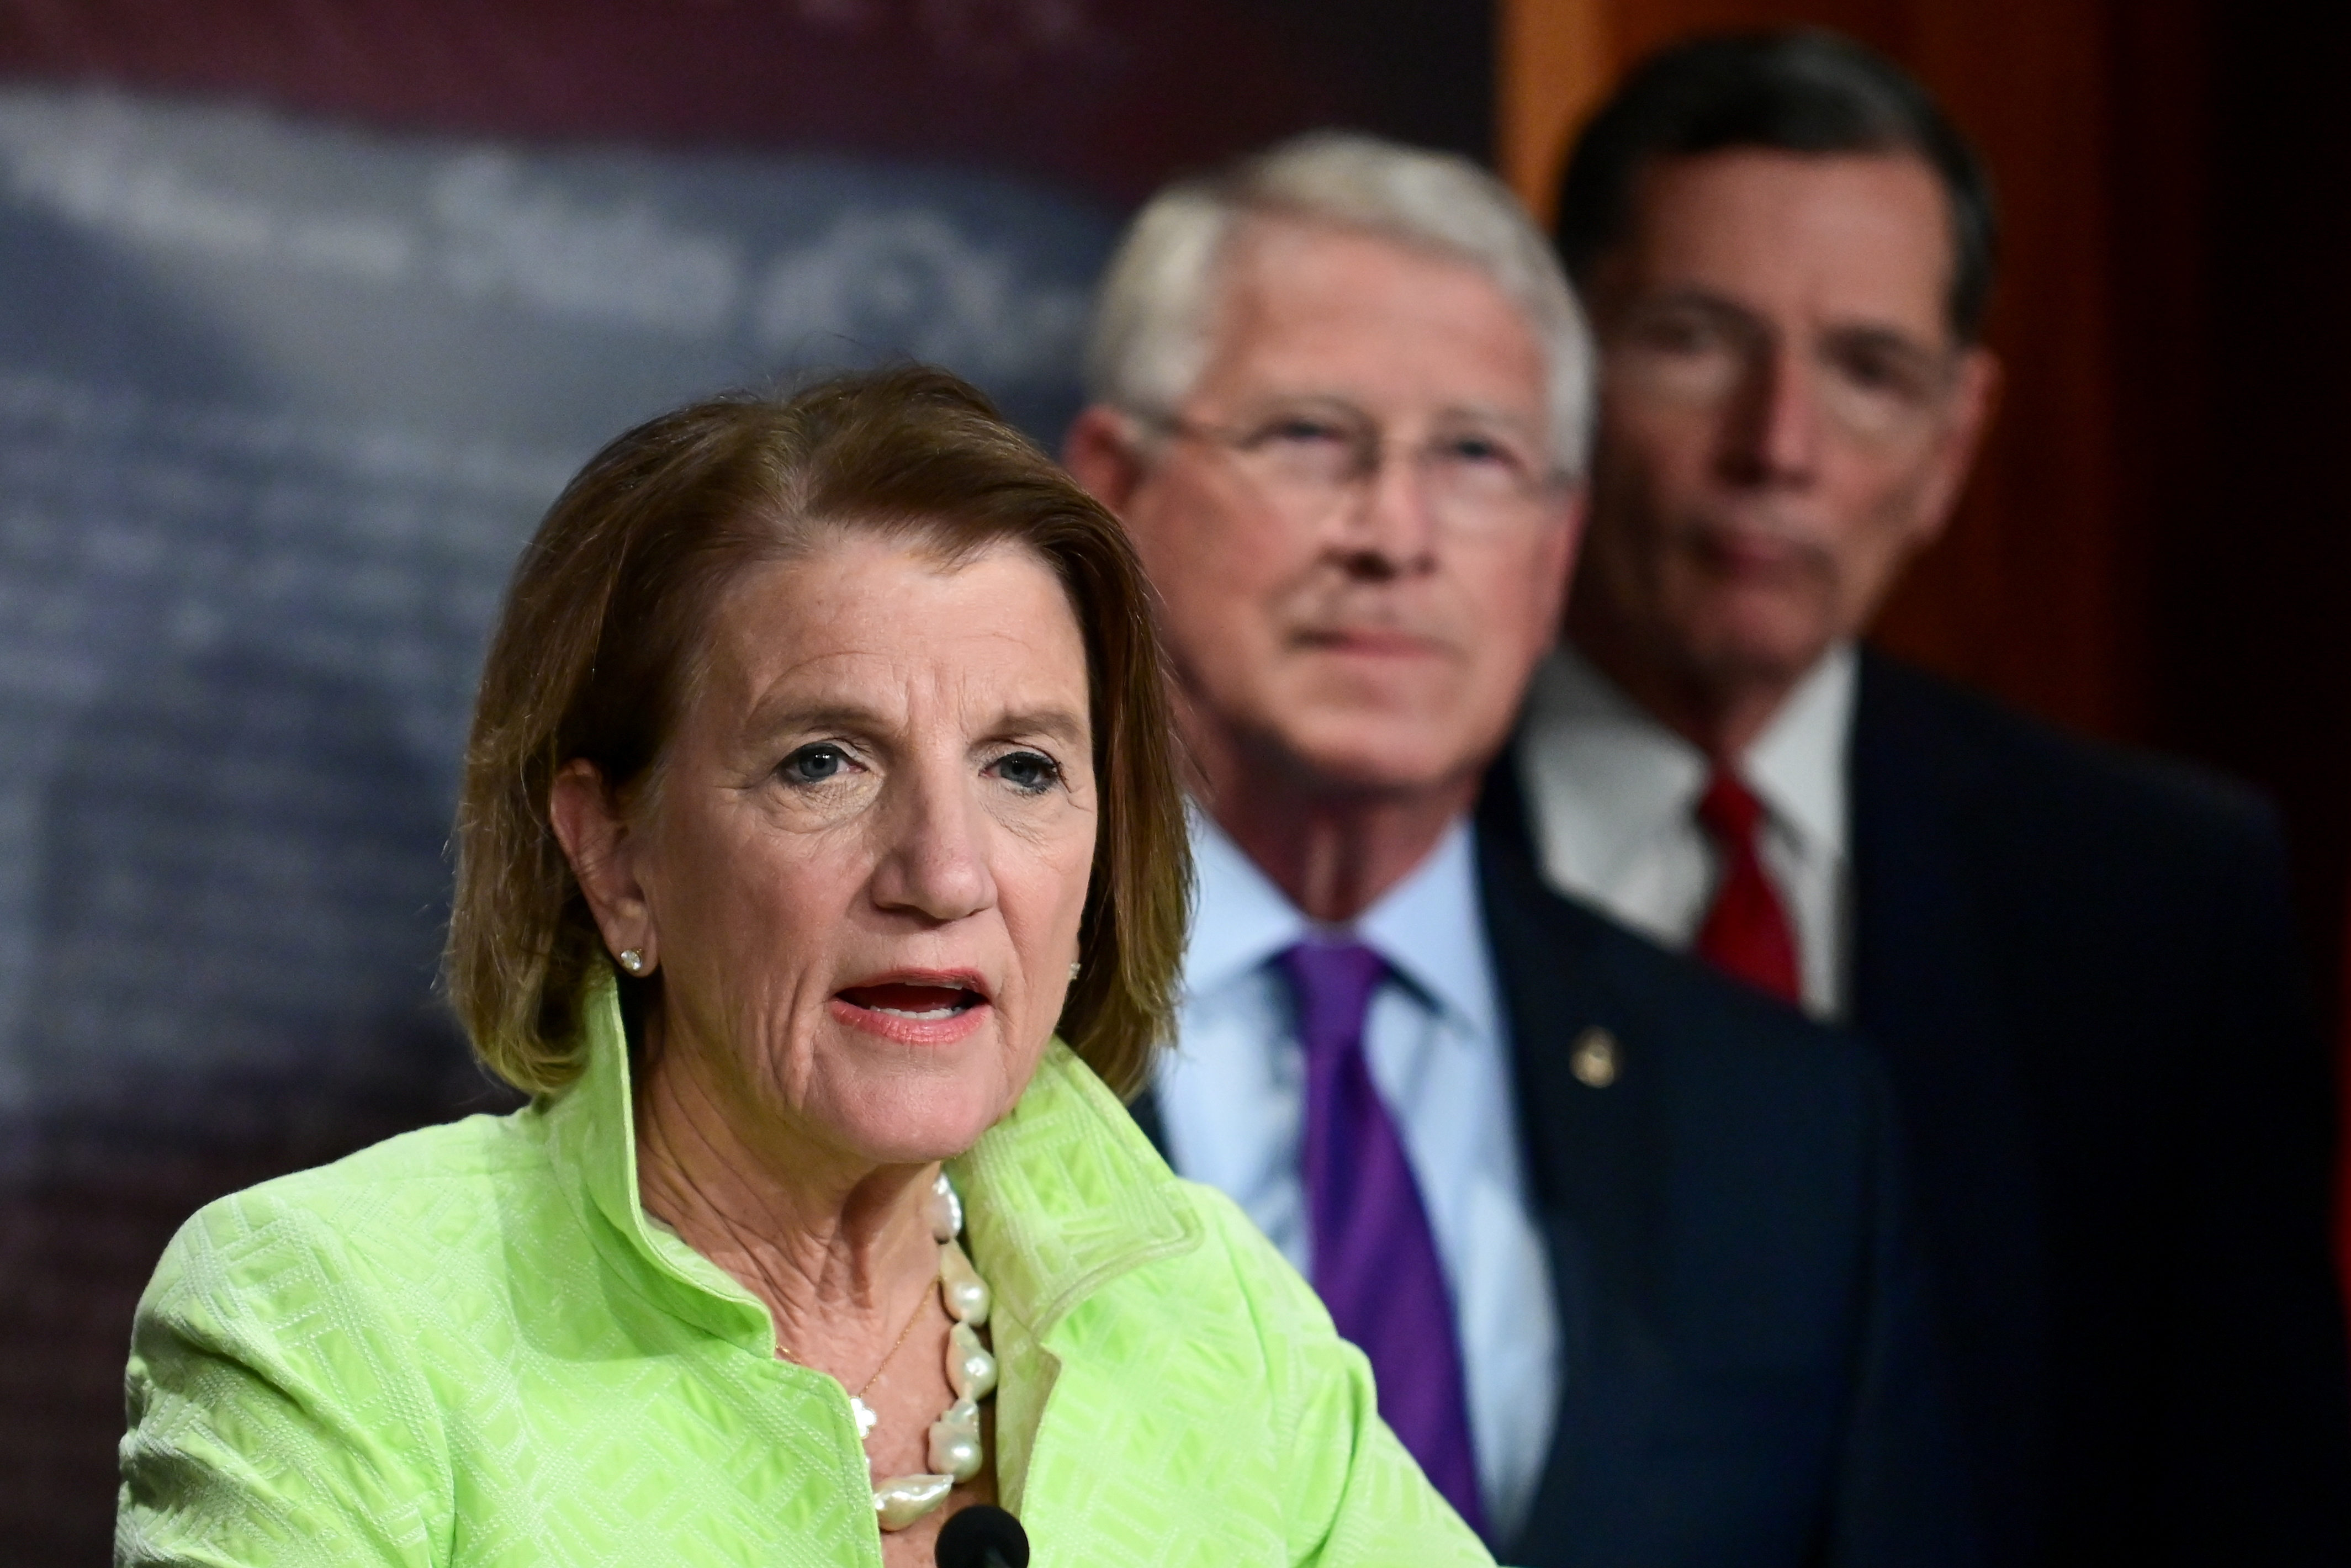 Shelley Capito (R-WV) speaks during a news conference to introduce the Republican infrastructure plan, as Roger Wicker (R-MS) and John Barrasso (R-WY) stand behind her, at the U.S. Capitol in Washington, U.S., April 22, 2021. REUTERS/Erin Scott